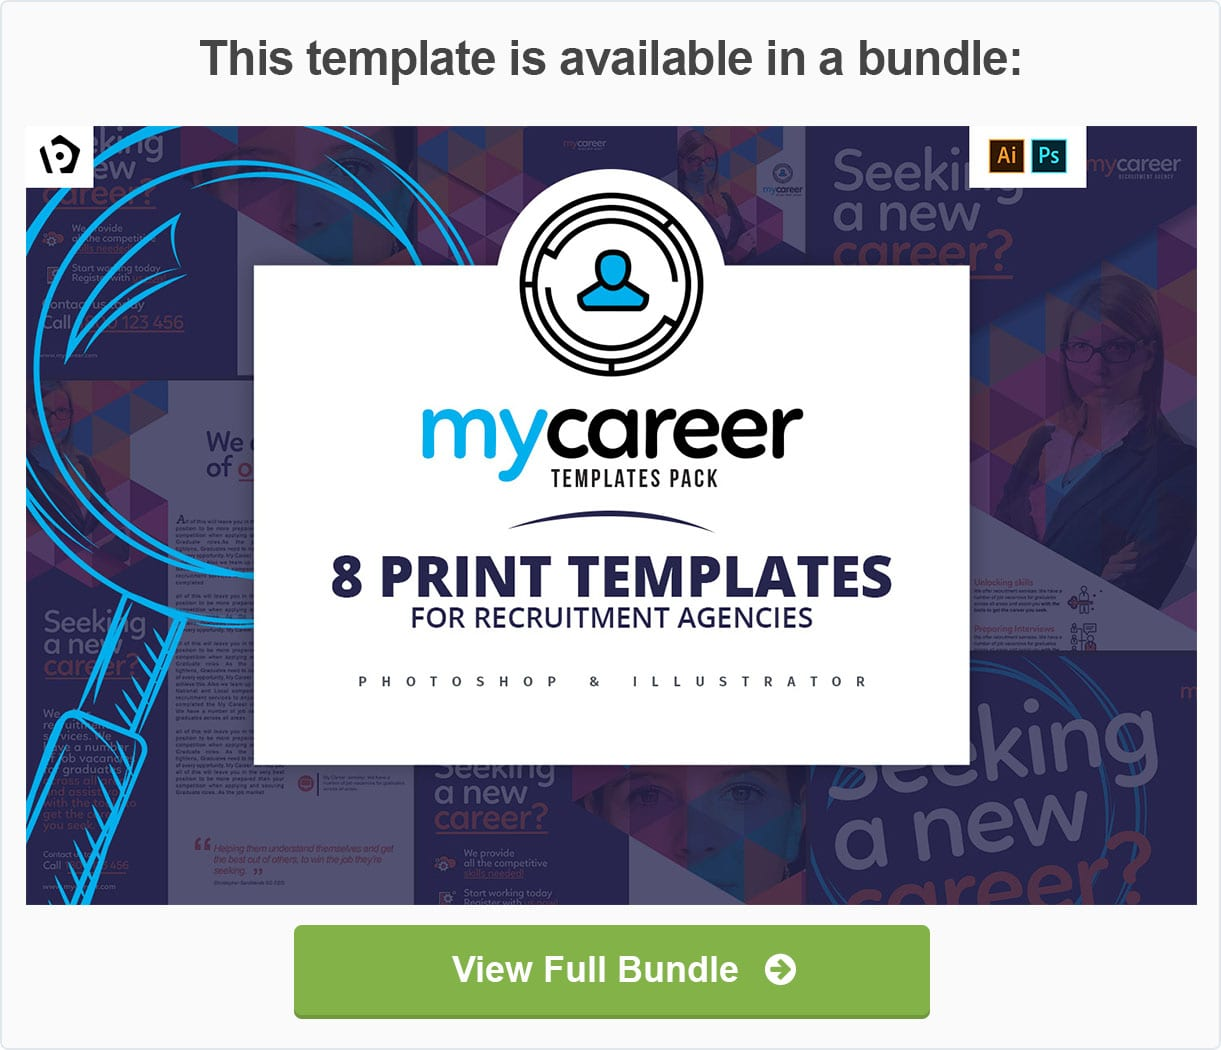 Recruitment Agency Templates Pack by BrandPacks